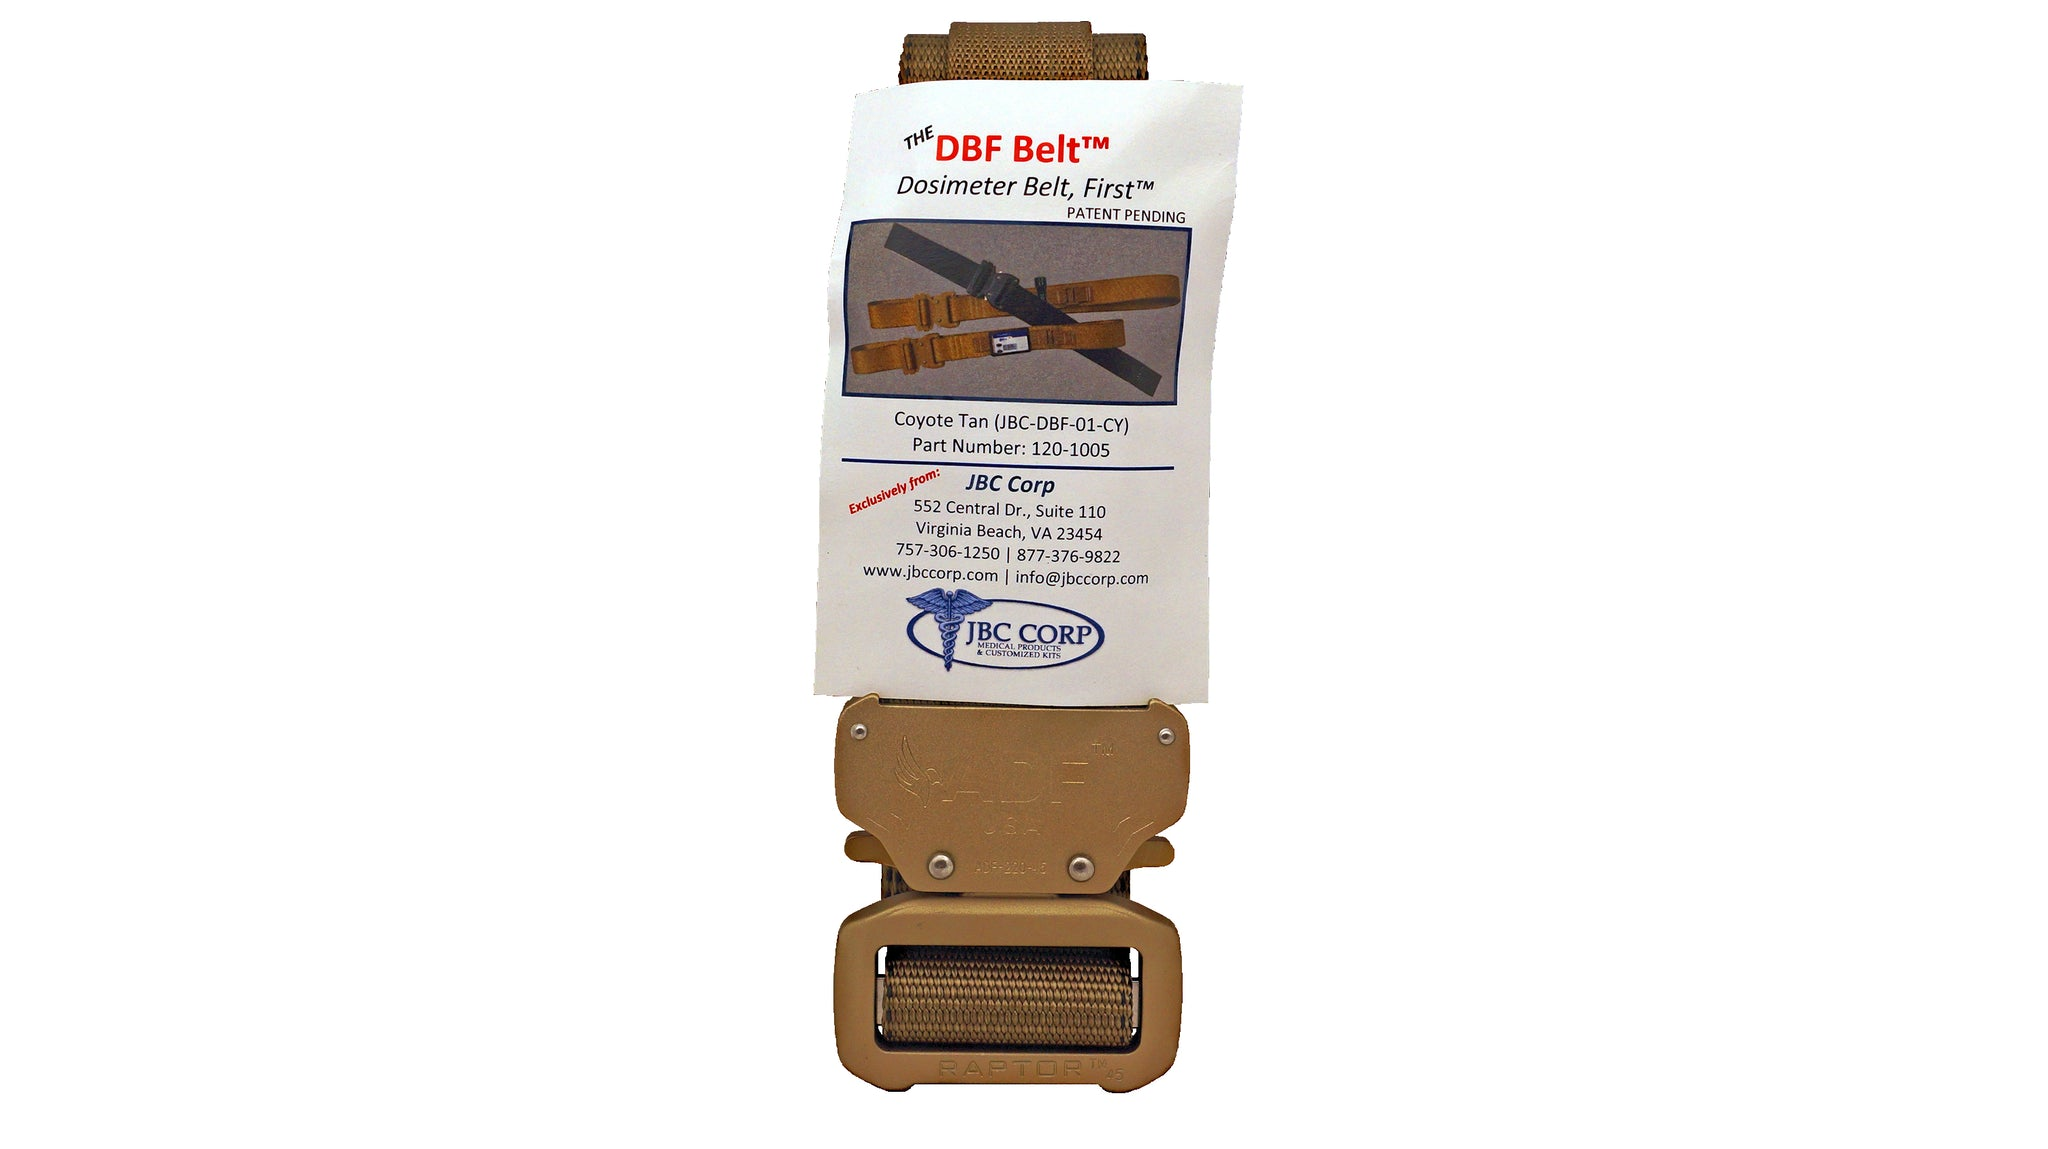 Tan/Coyote rigger's style belt with added nylon loop and metal hook to secure a ThermoLuminescent Dosimeter or TLD